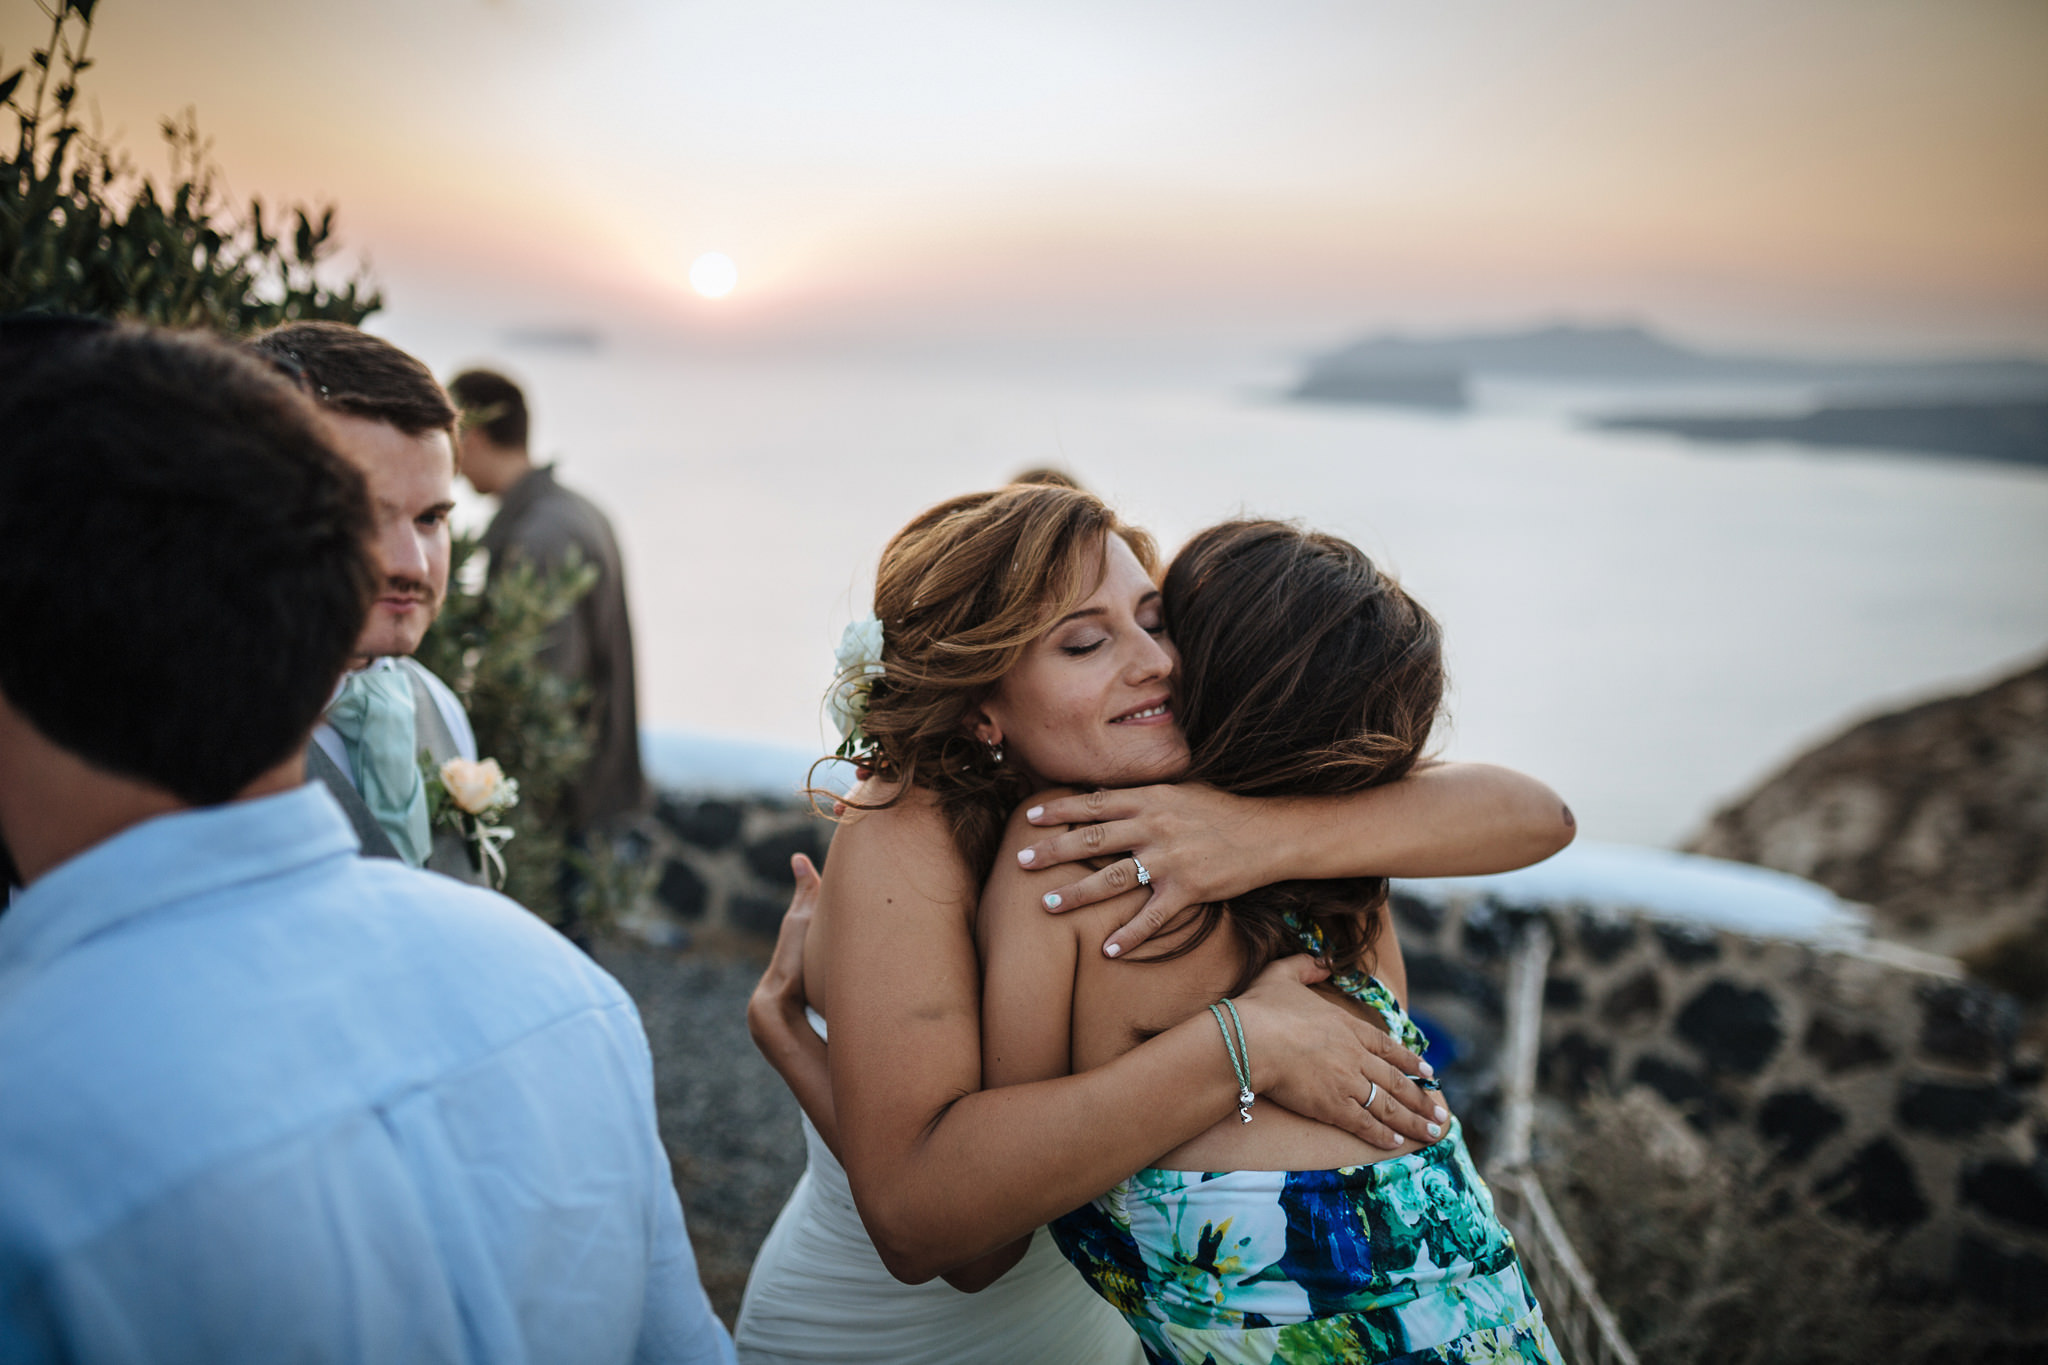 santorini-wedding-photographer-destination-90069